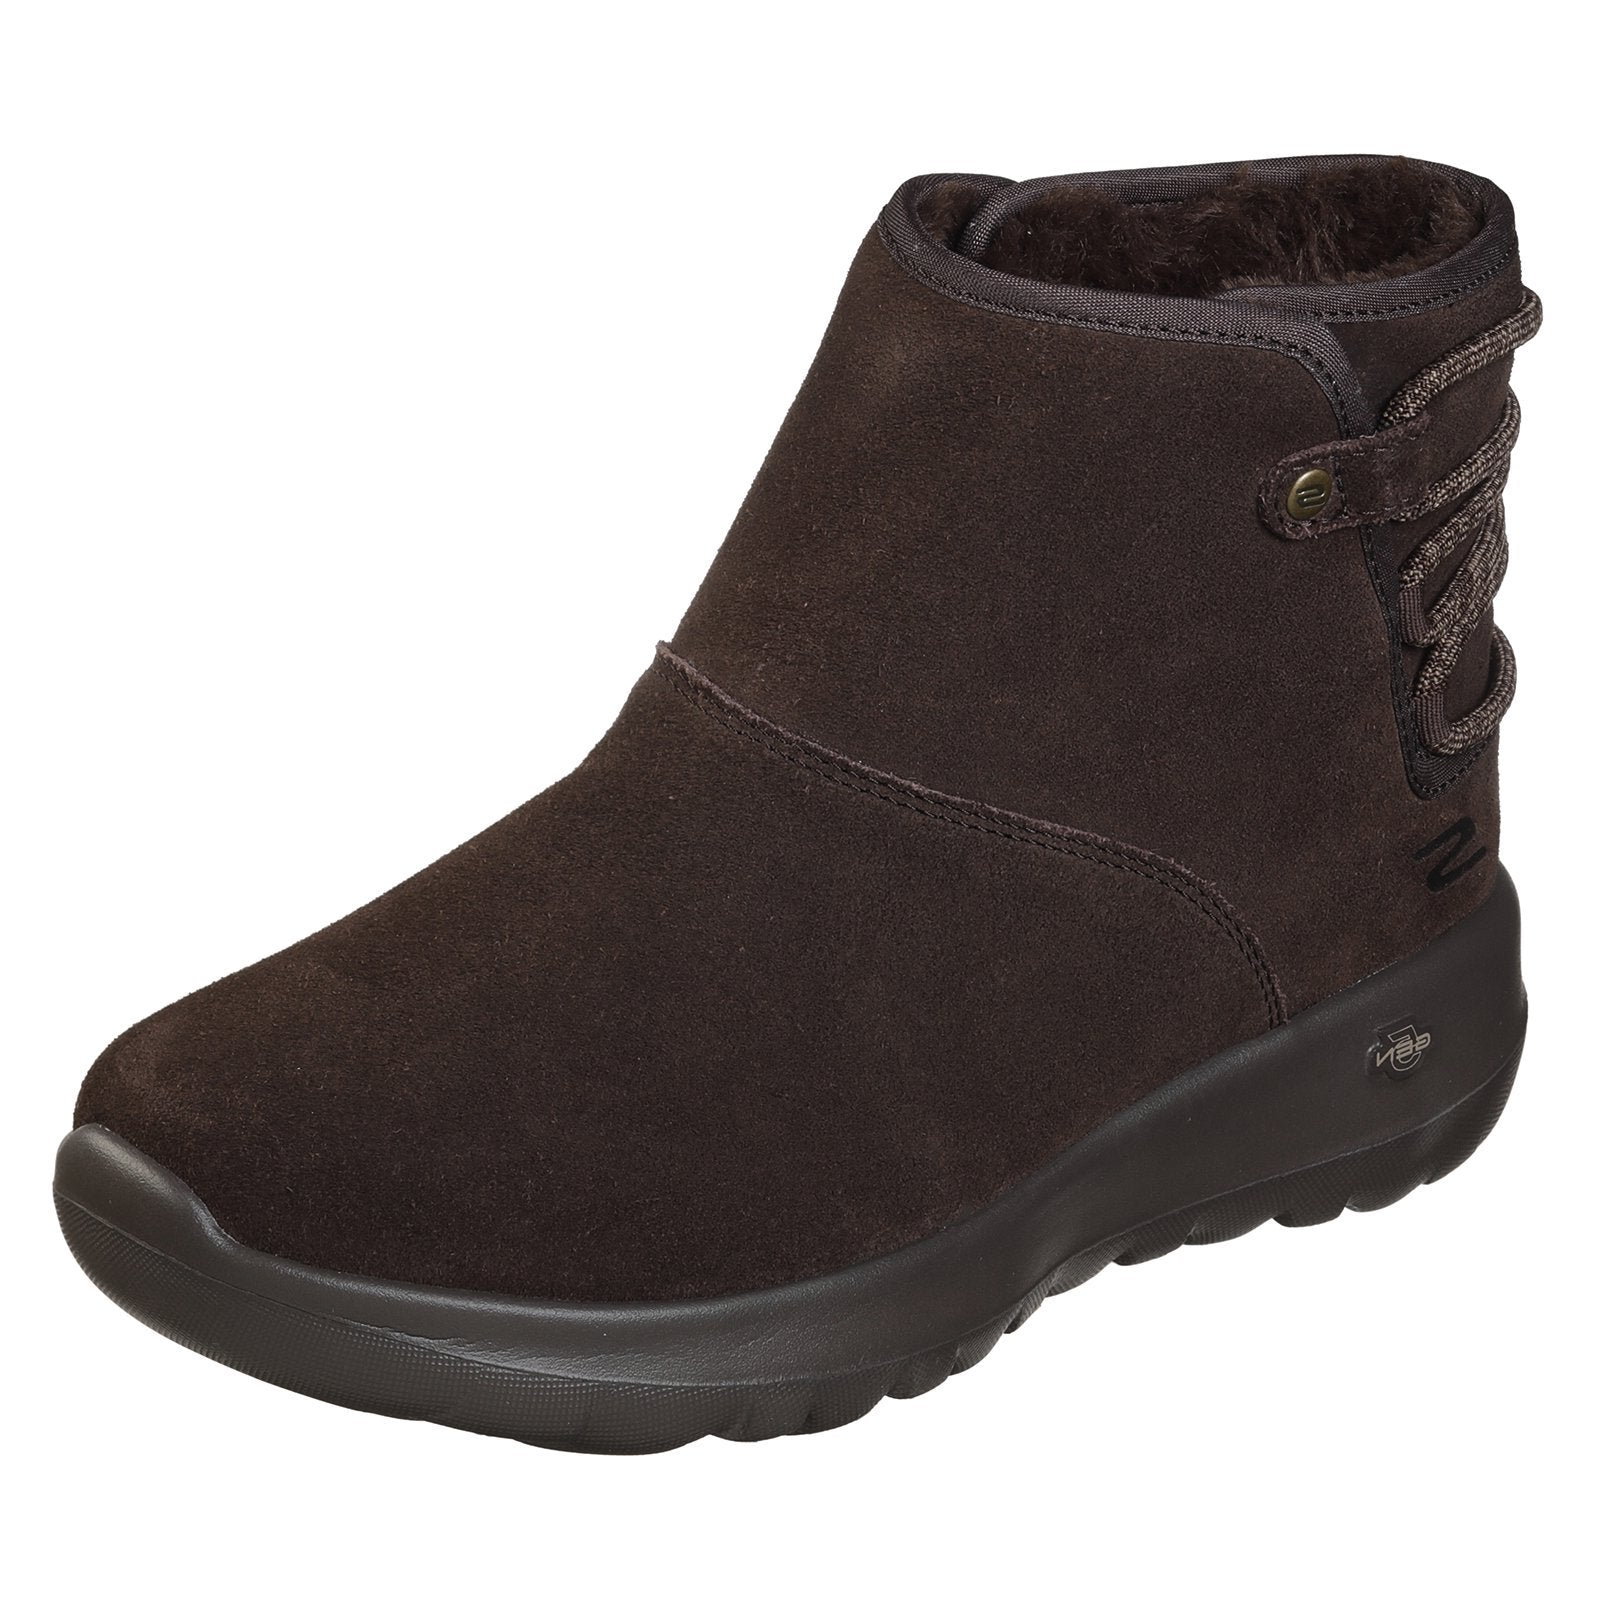 Ghete Skechers 15502 CHOC